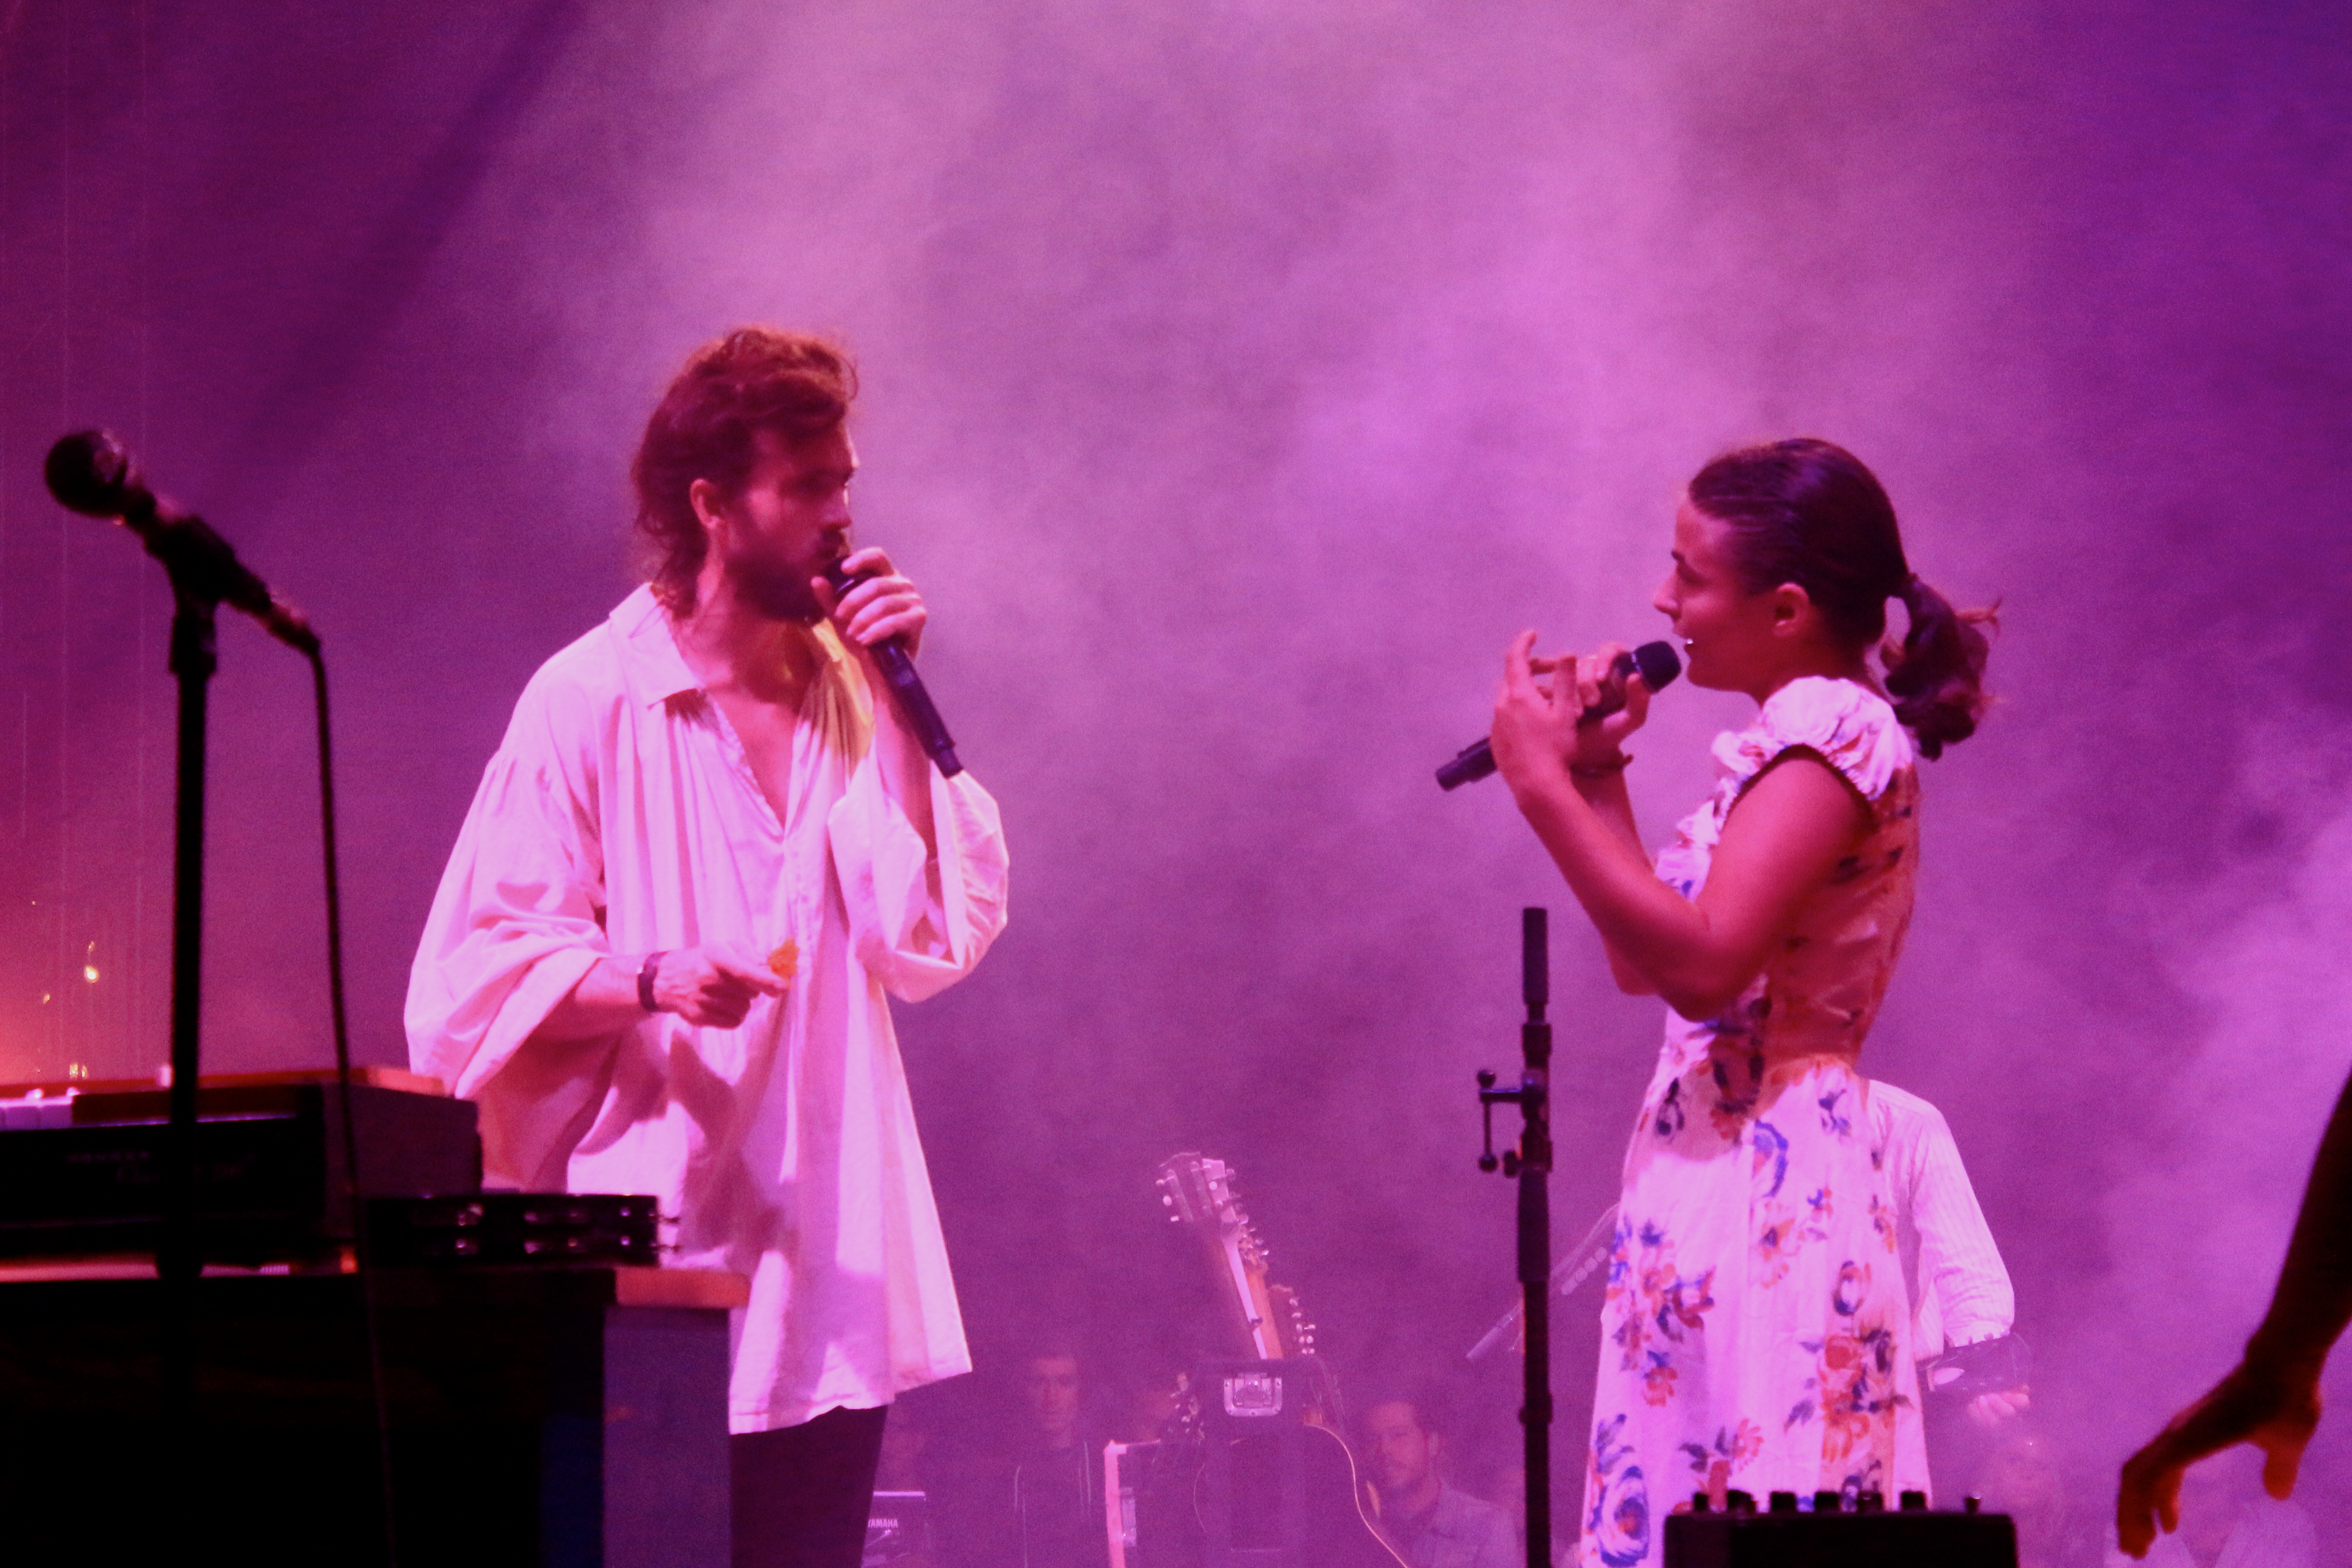 Alex Ebert Working on Solo Music, Confirms Edward Sharpe and the Magnetic Zeros Are On Hiatus